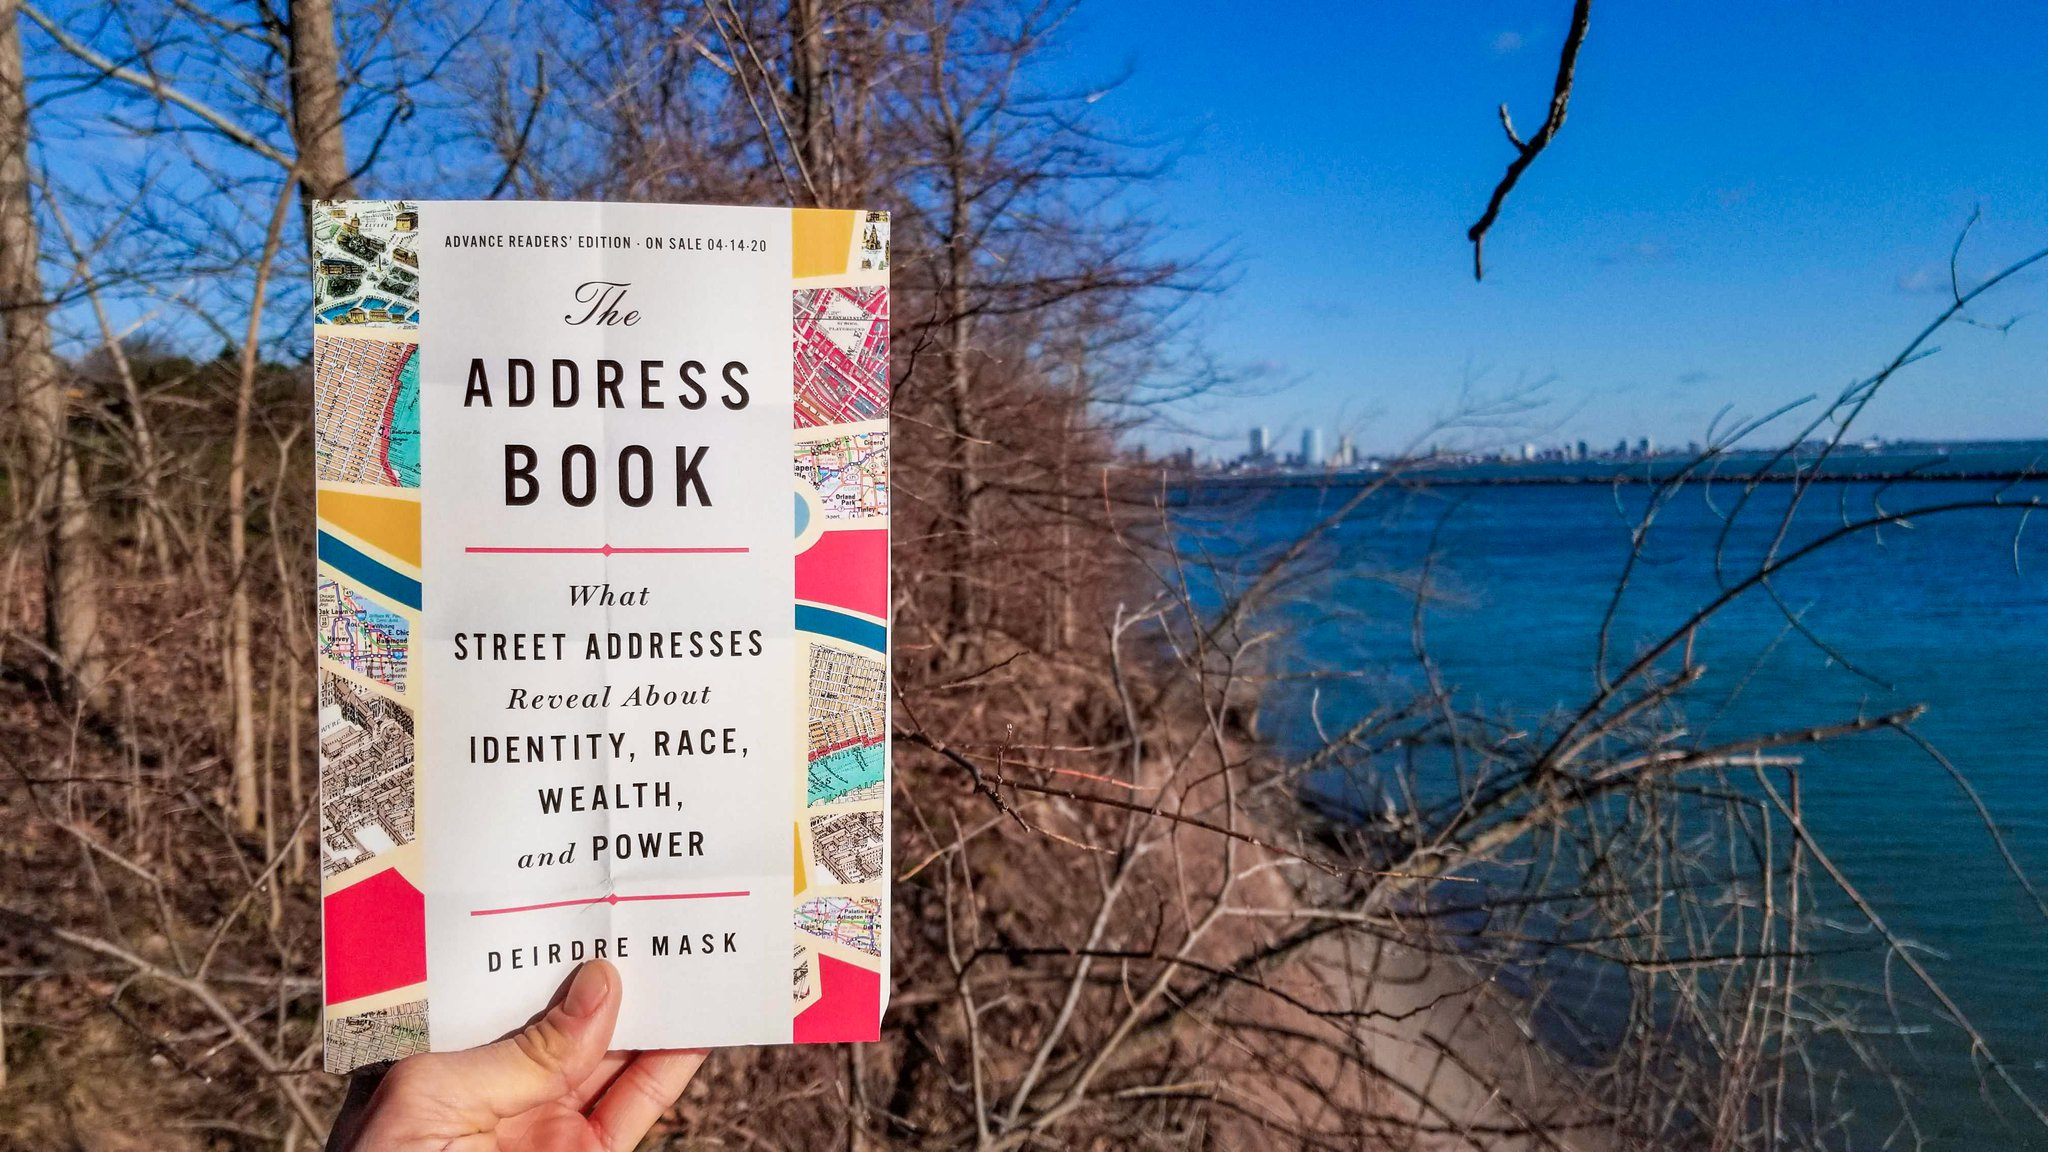 The Address Book What Street Addresses Reveal About Identity Race Wealth And Power By Deirdre Mask